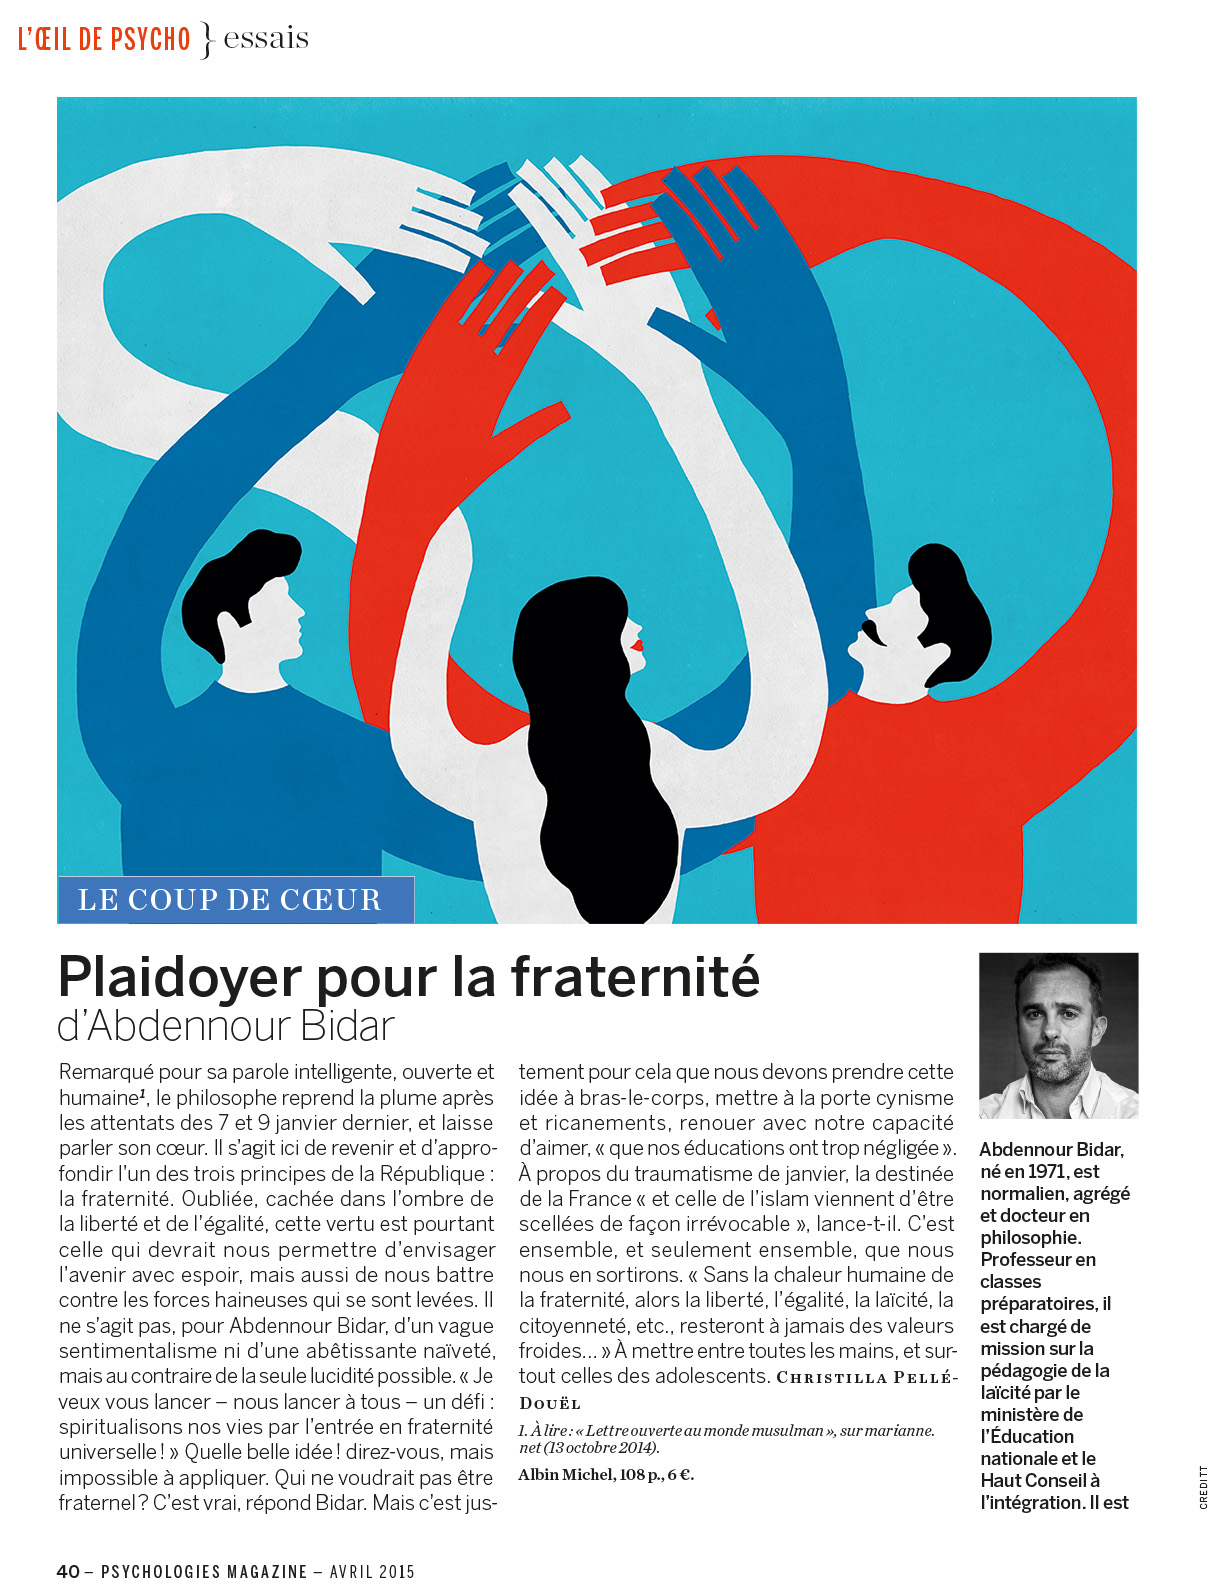 Joanna_Gniady_Fraternite_Psychologies2